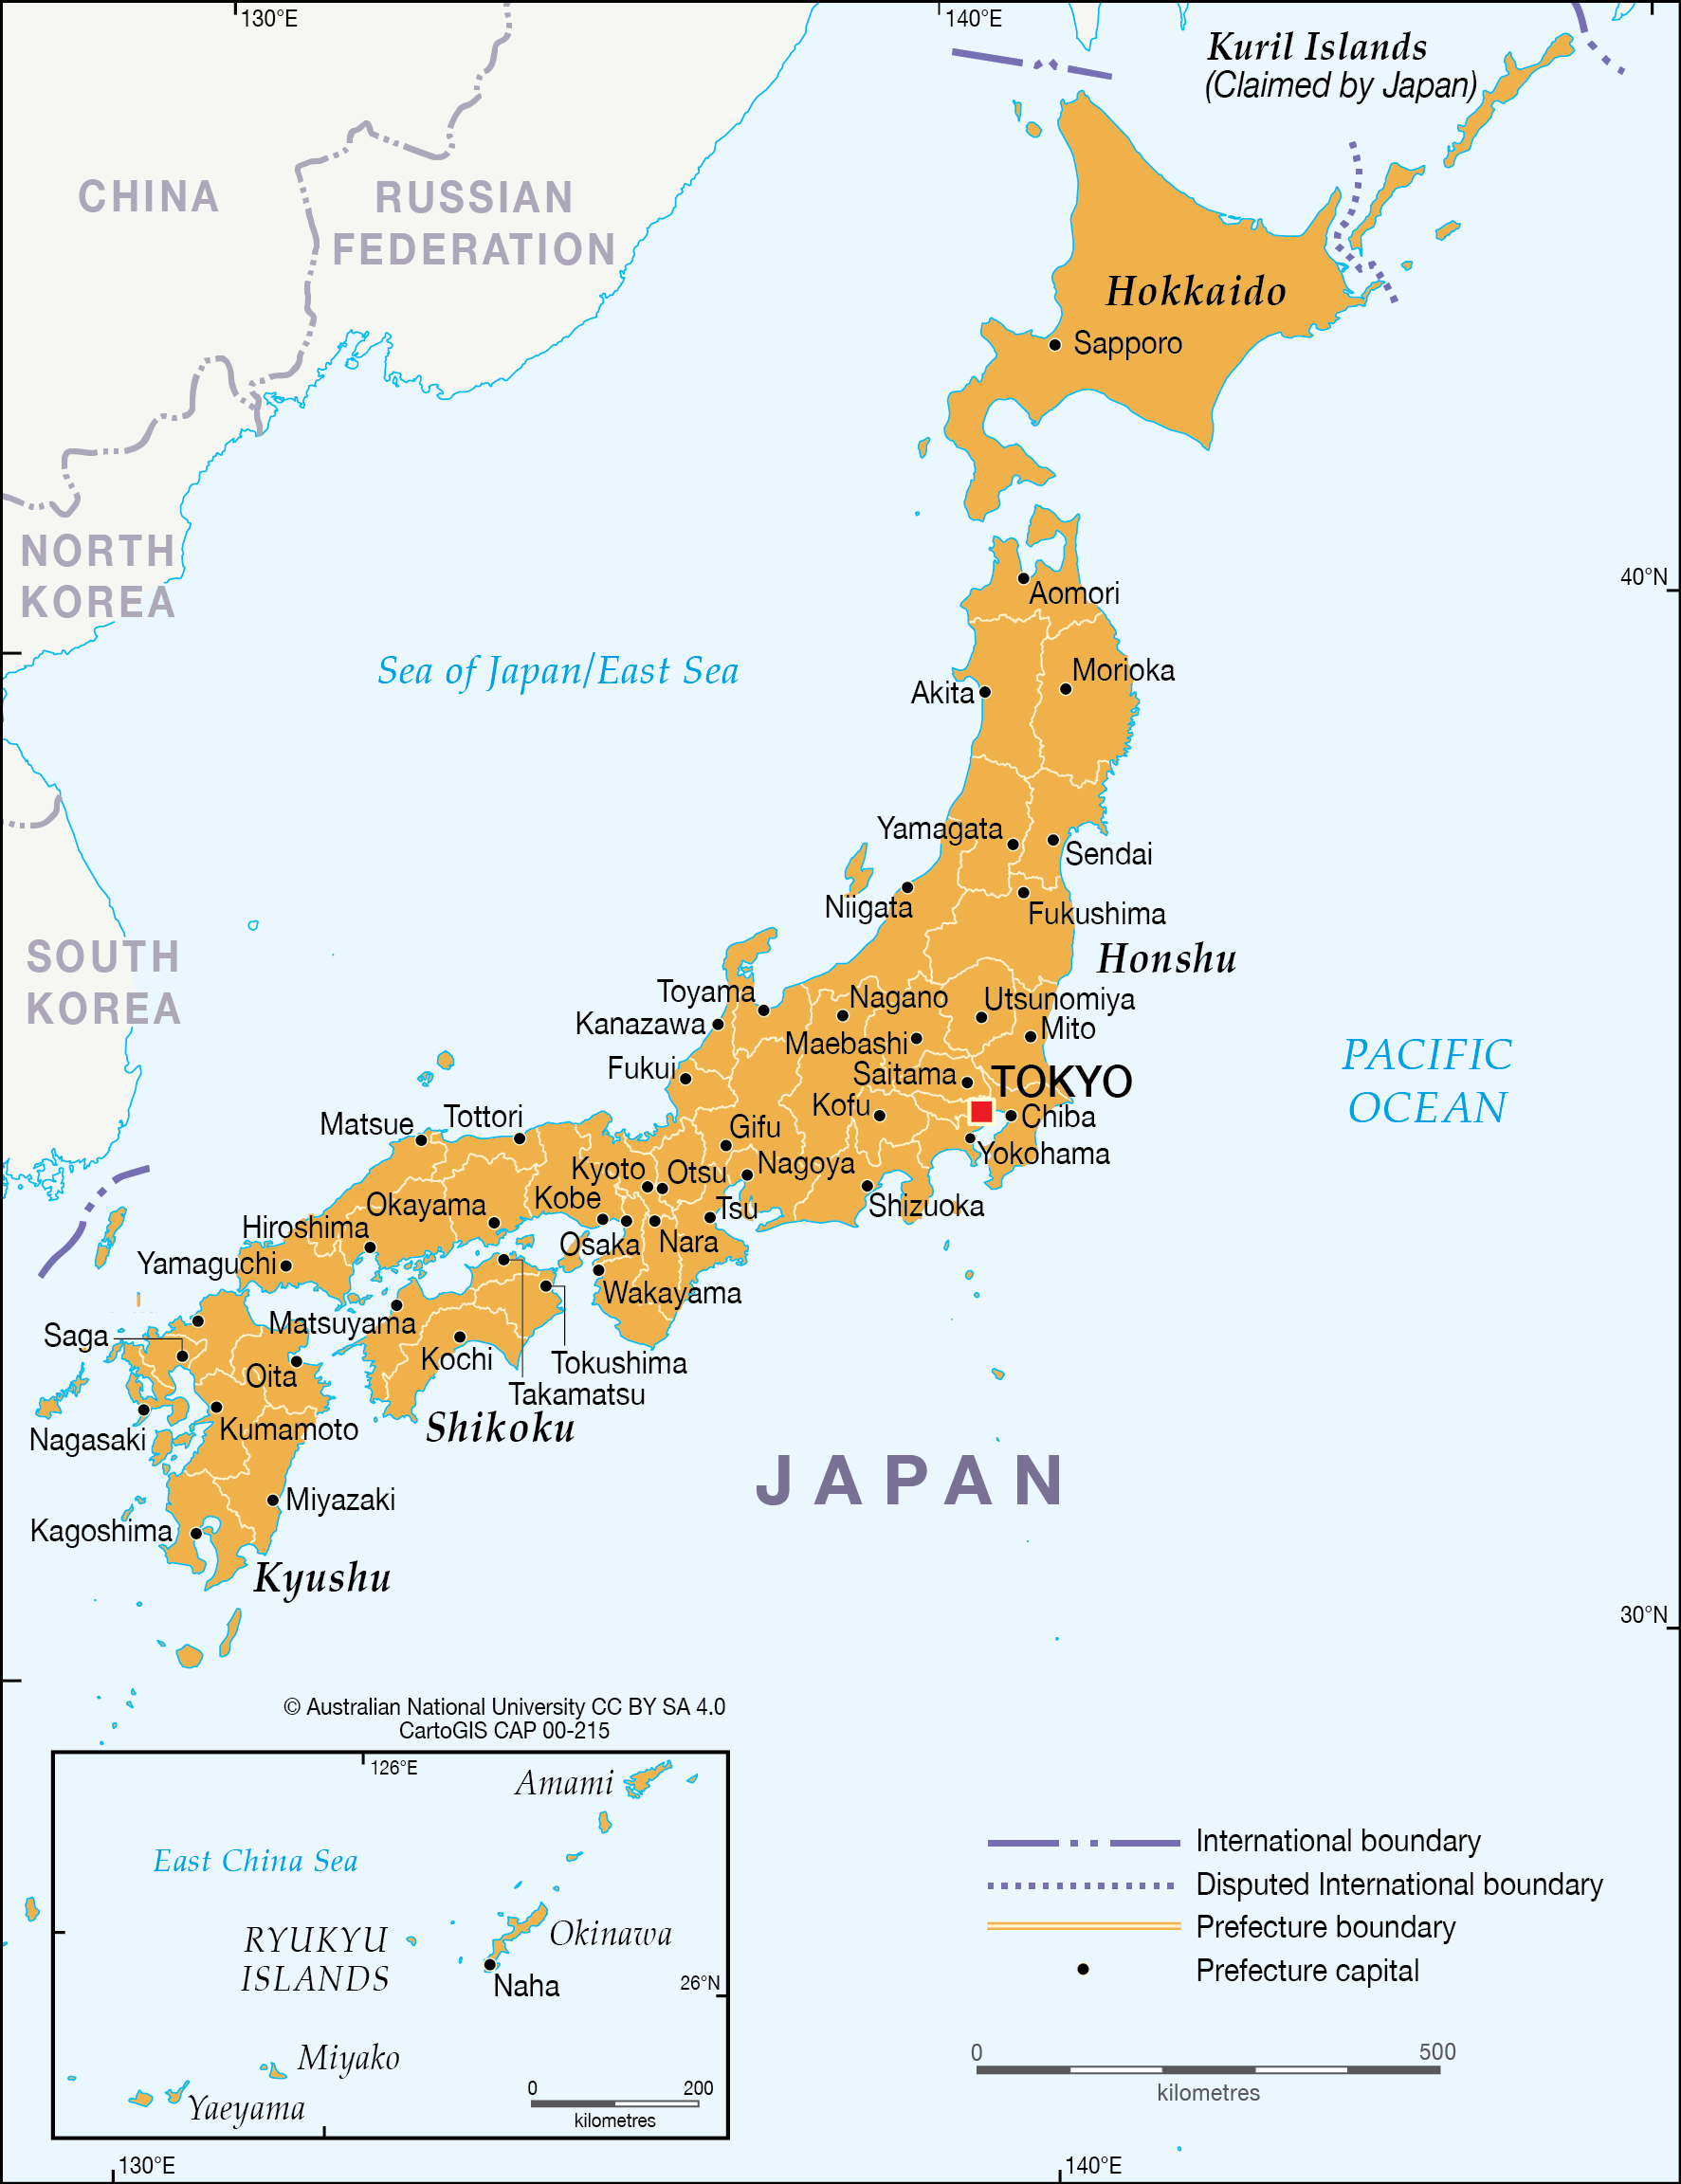 Map Of Japan With Prefectures.Japan Prefectures Cartogis Services Maps Online Anu